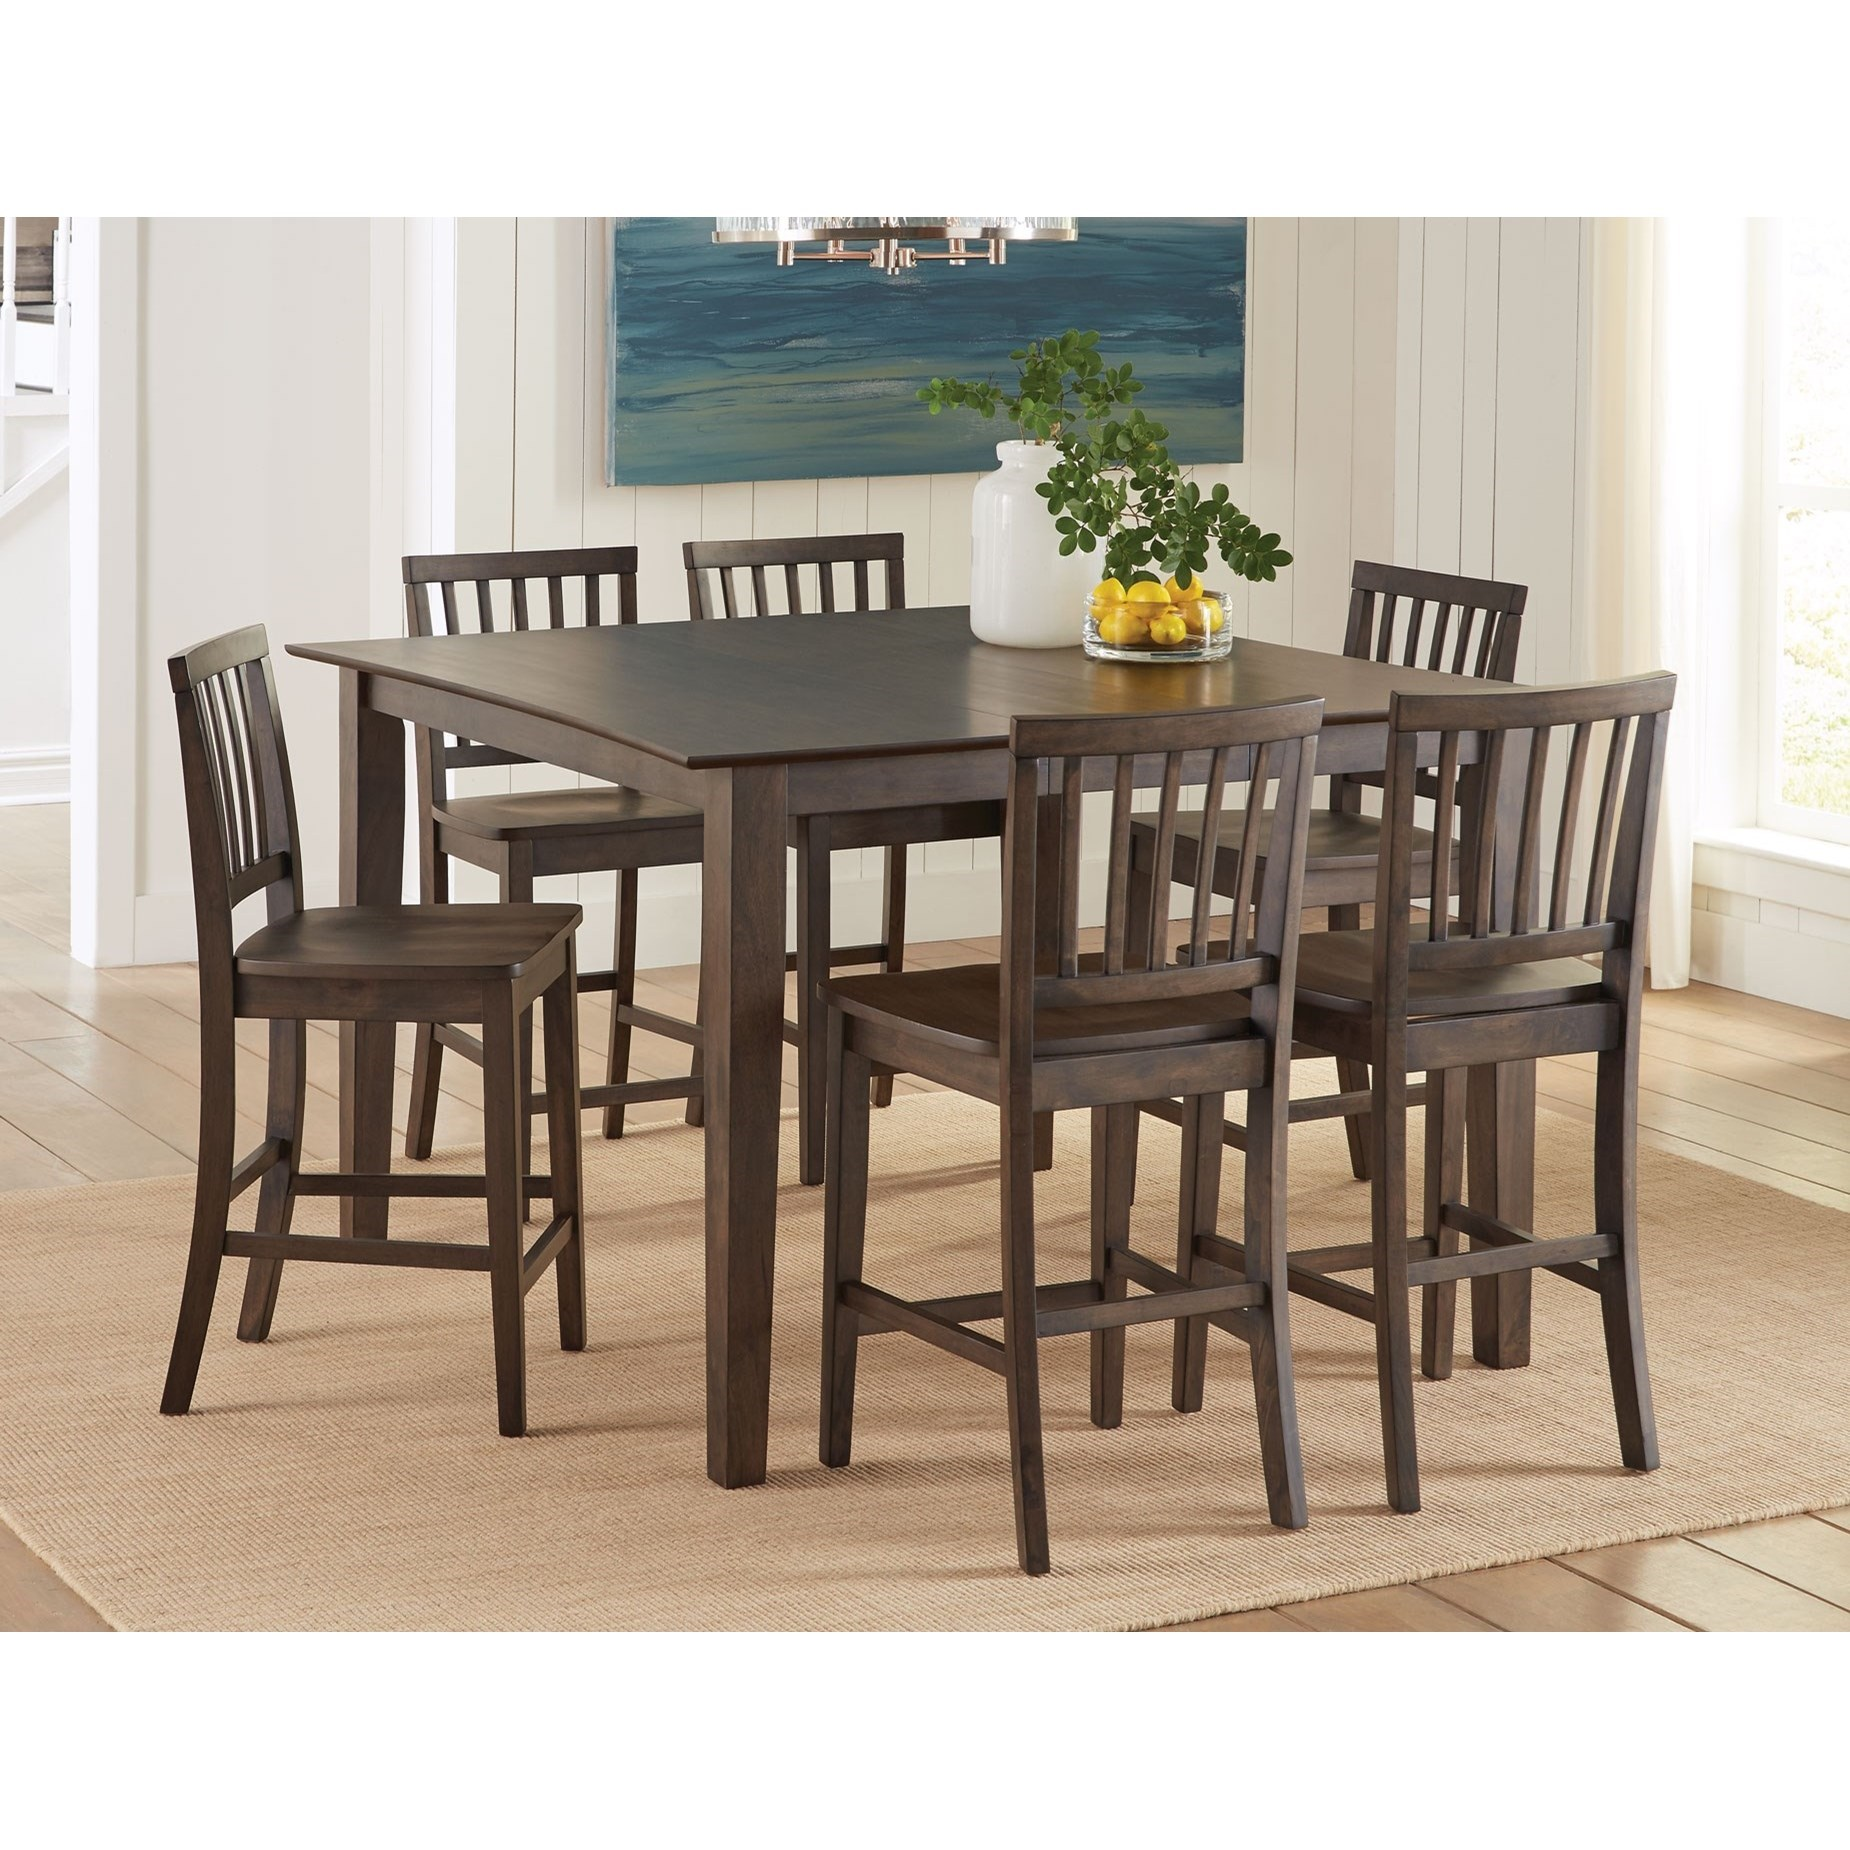 Prime Branson 7 Piece Counter Height Dining Set  Prime